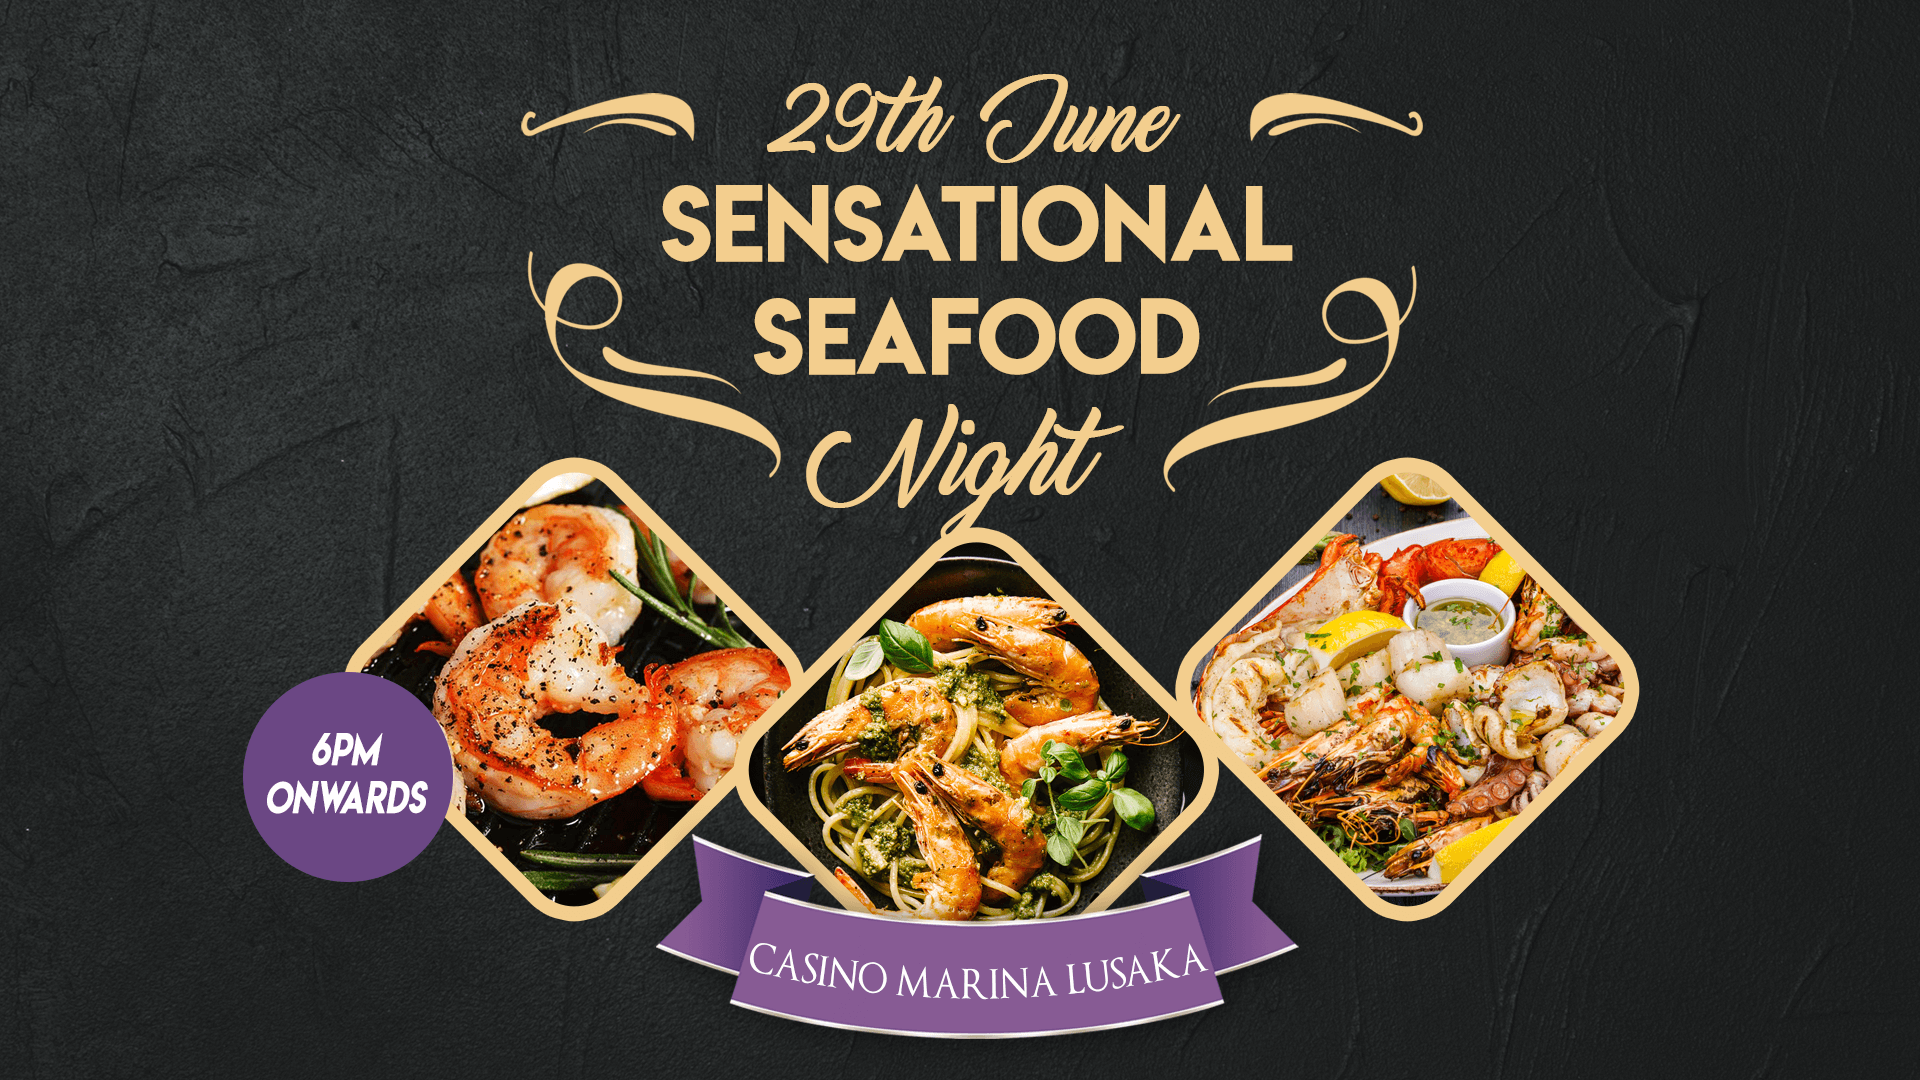 Sensational seafood night